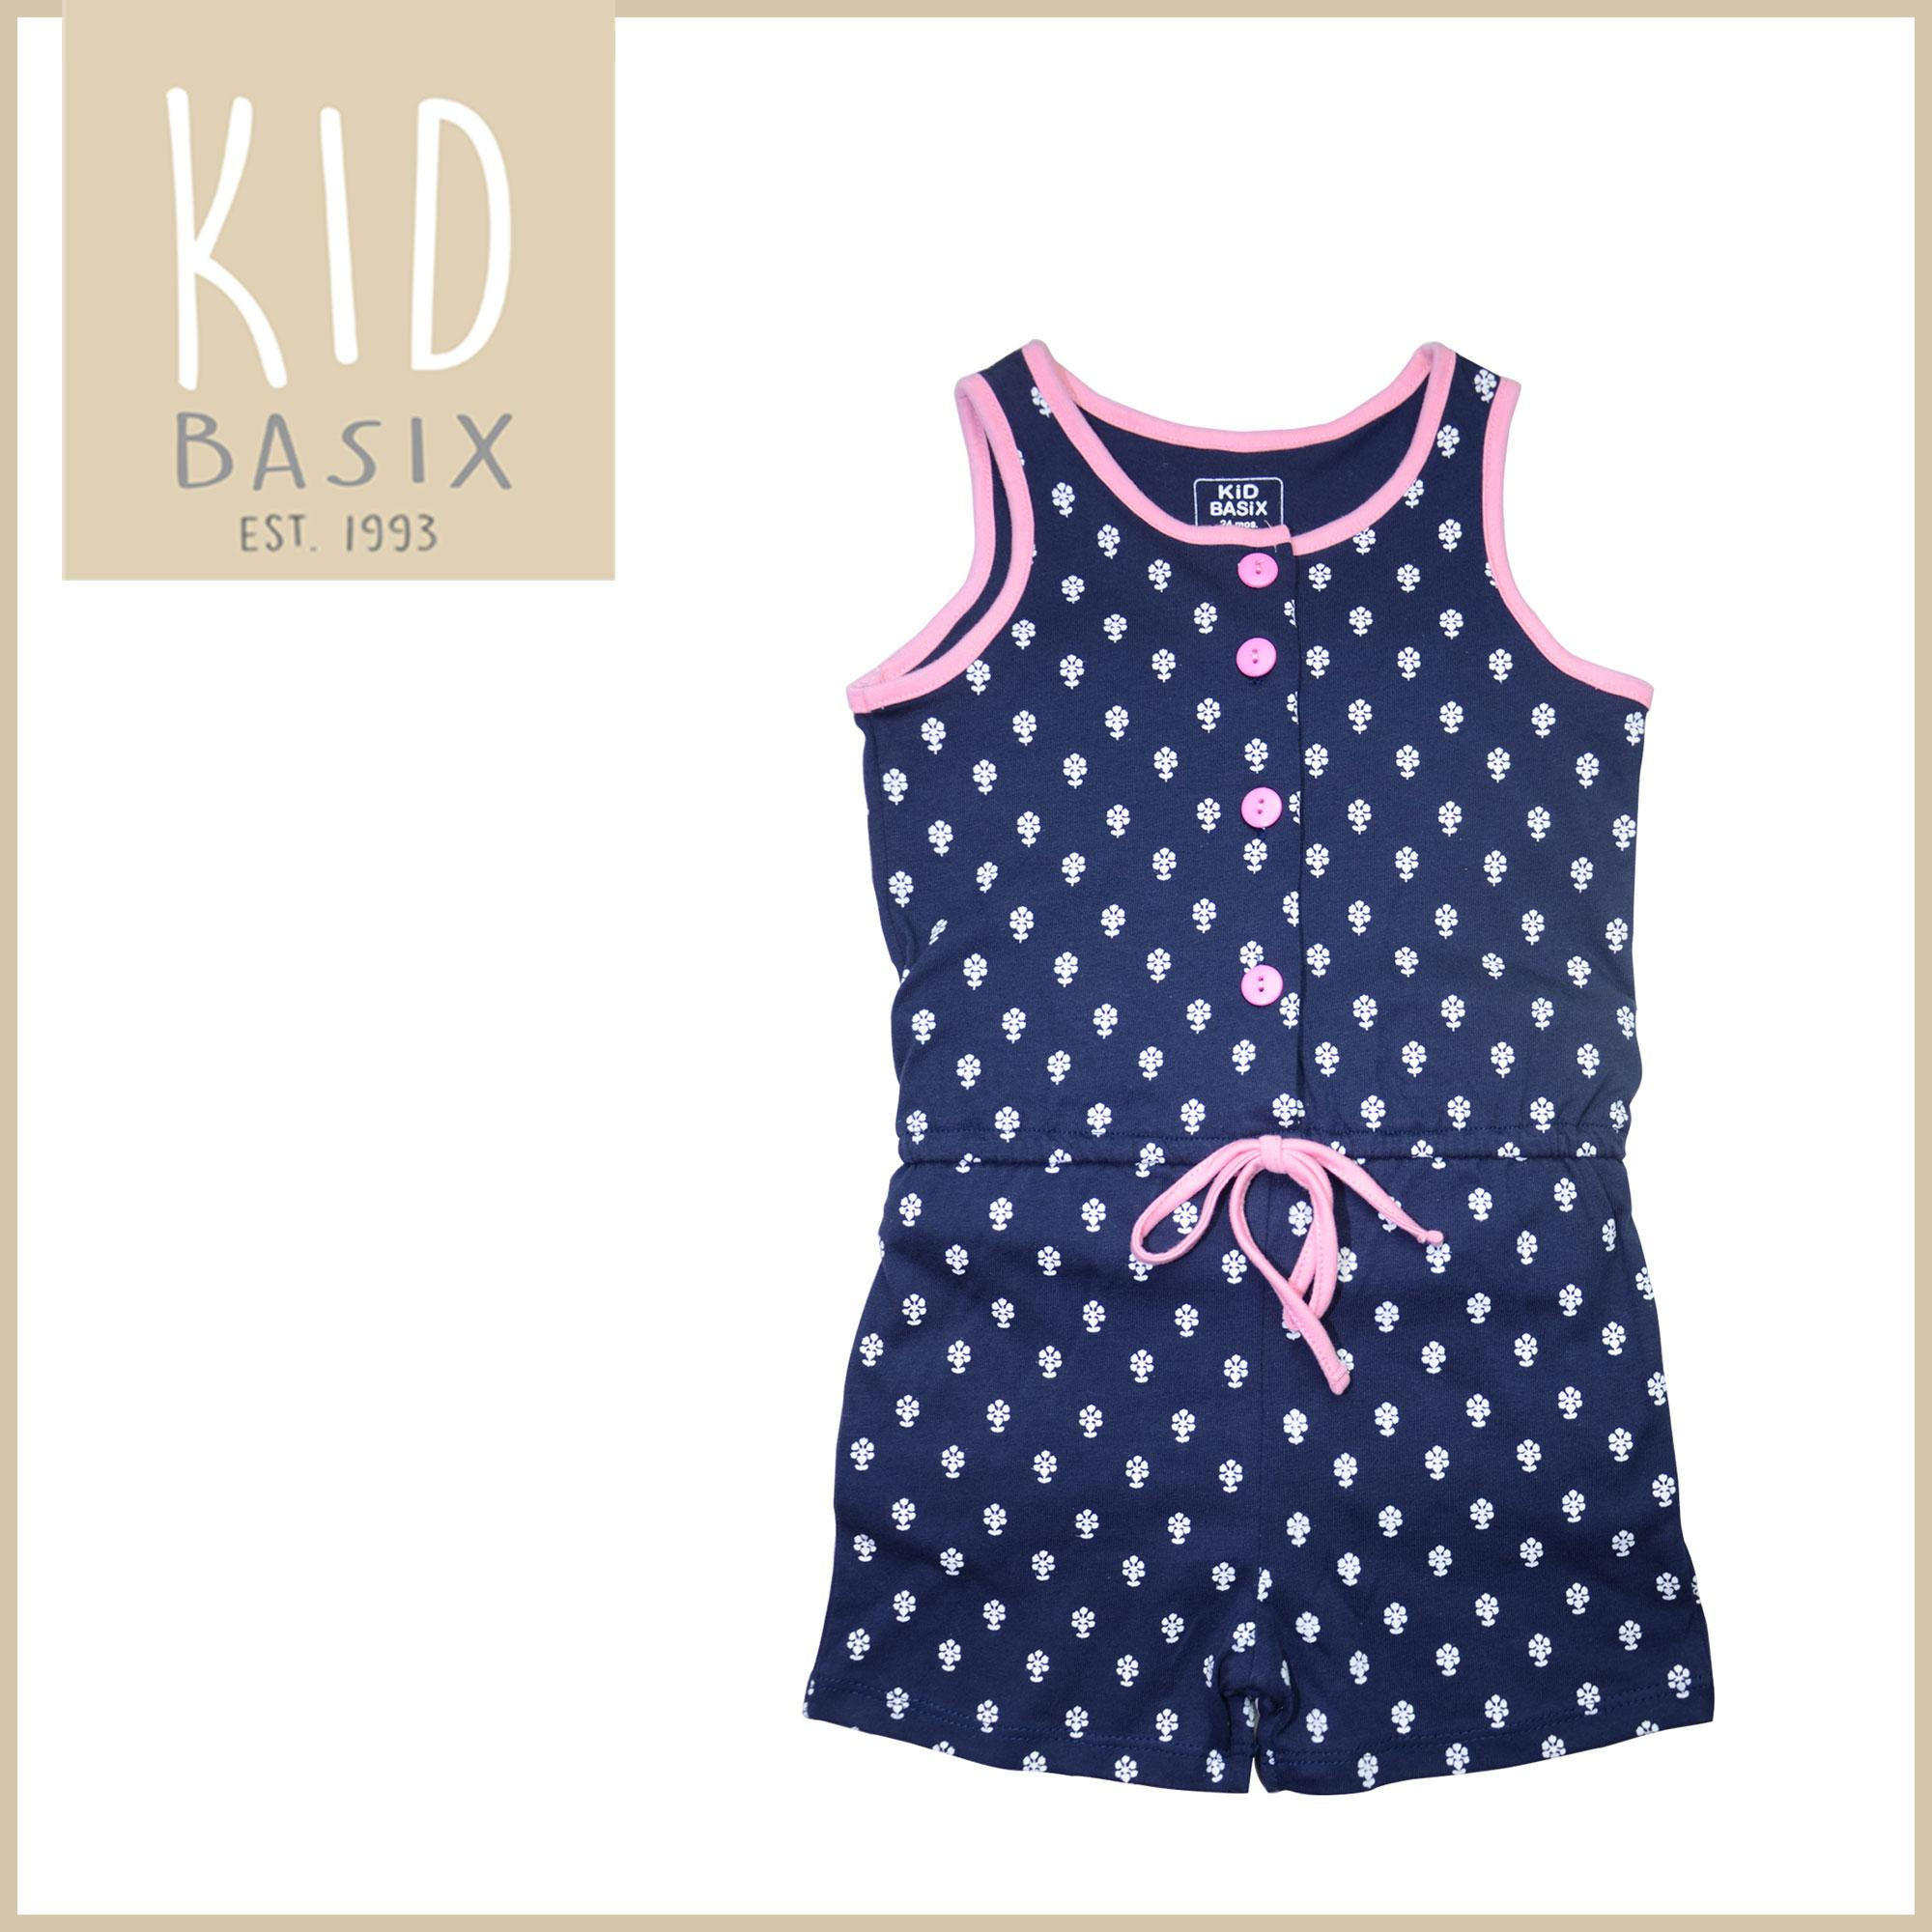 2e0815277 Kid Basix Kids Clothes for Girls Fashion Jumpsuit Romper Navy / Pink with  Printed White Flowers